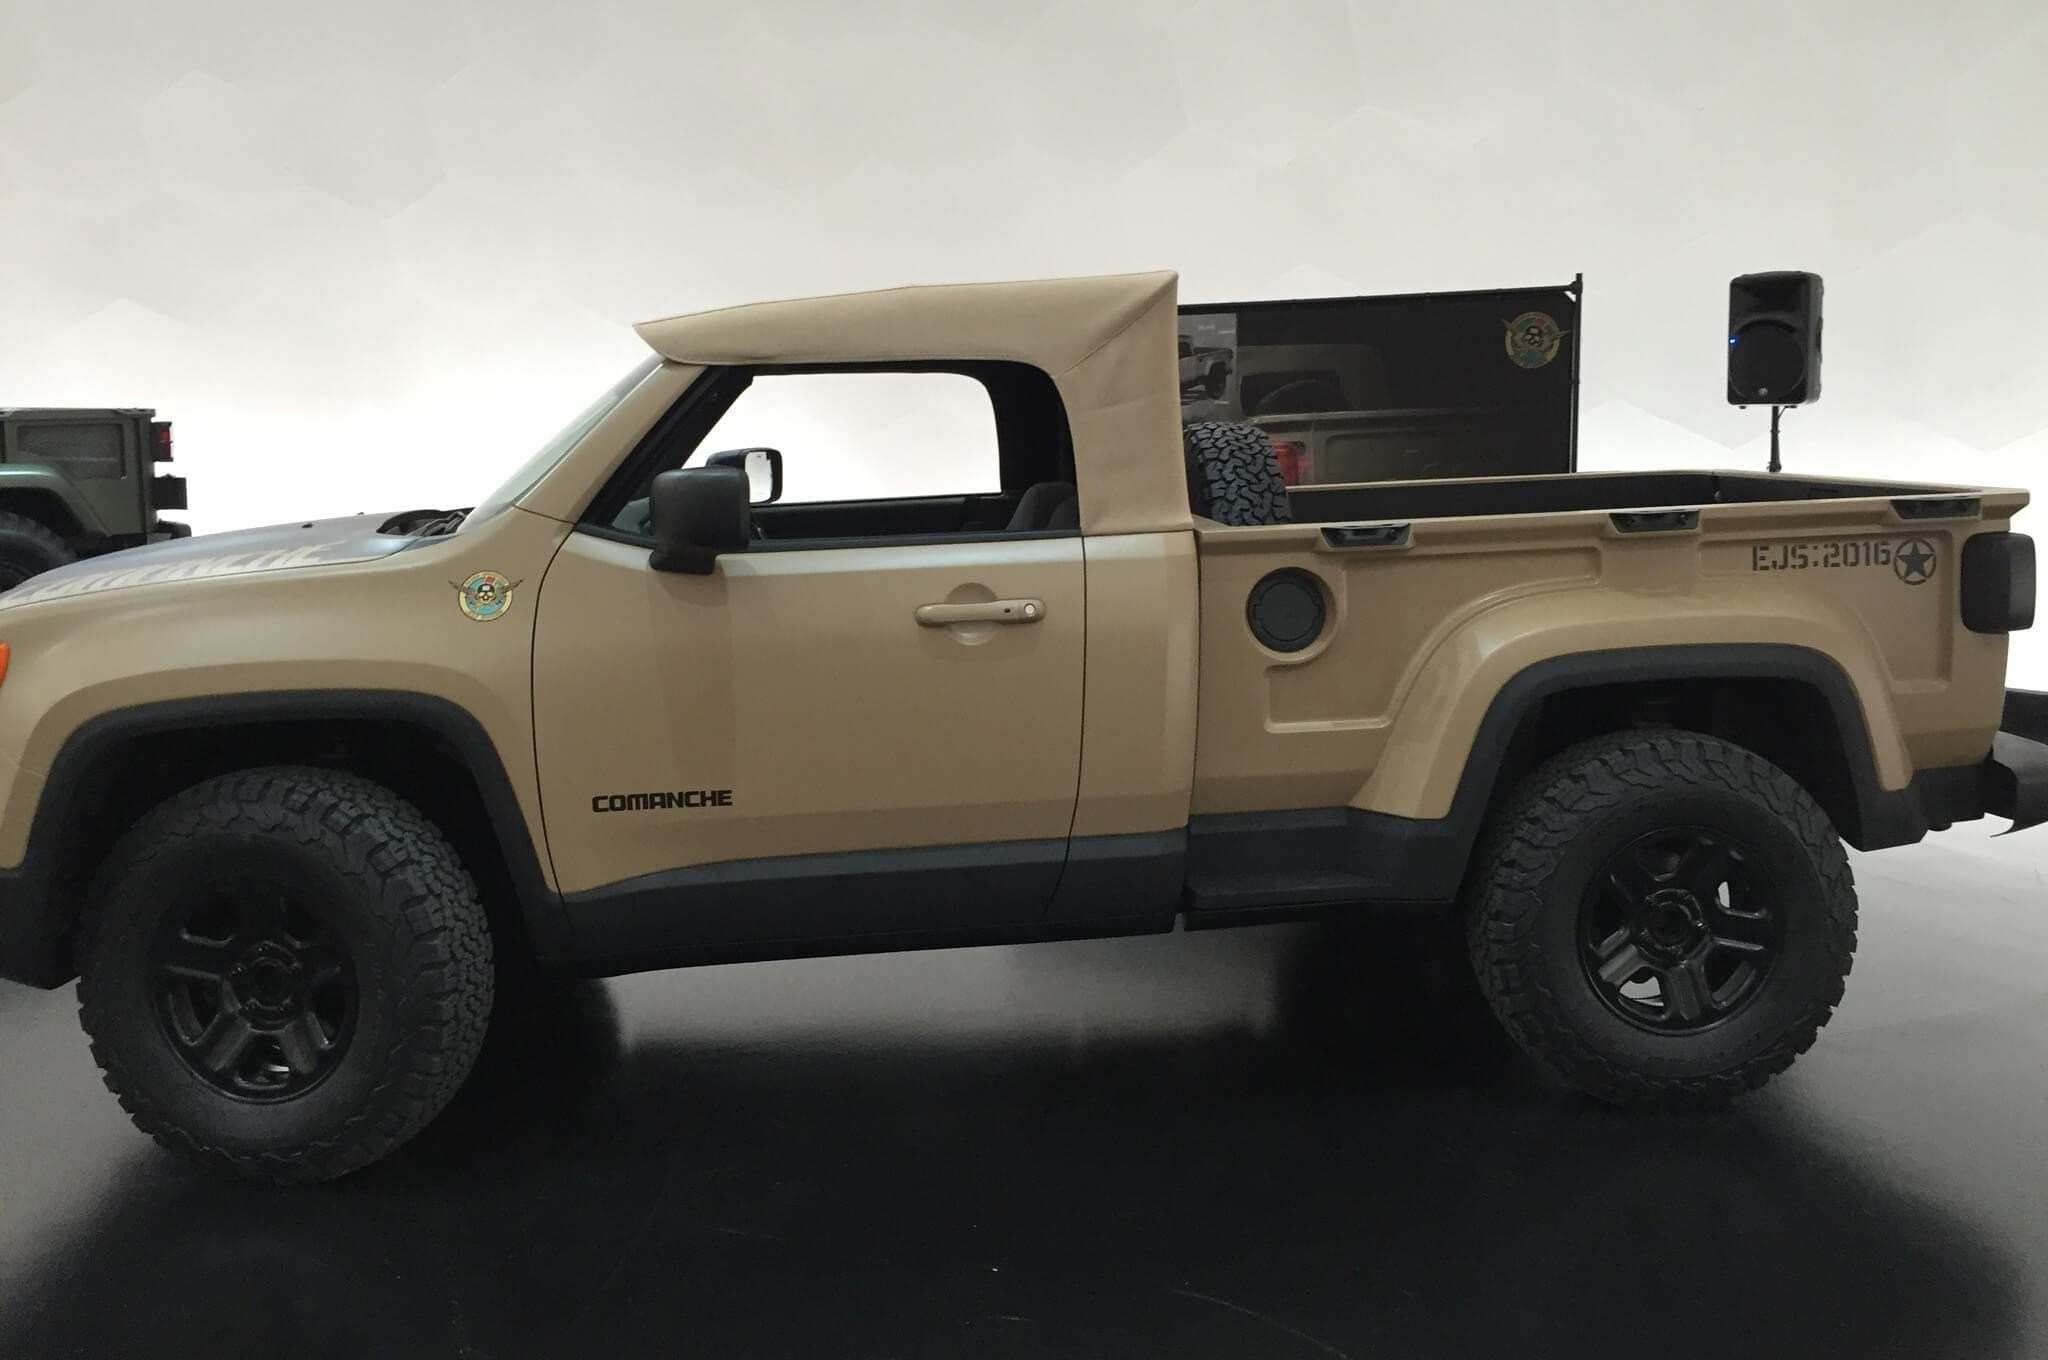 60 Best Review The Comanche Jeep 2019 Release Prices for The Comanche Jeep 2019 Release